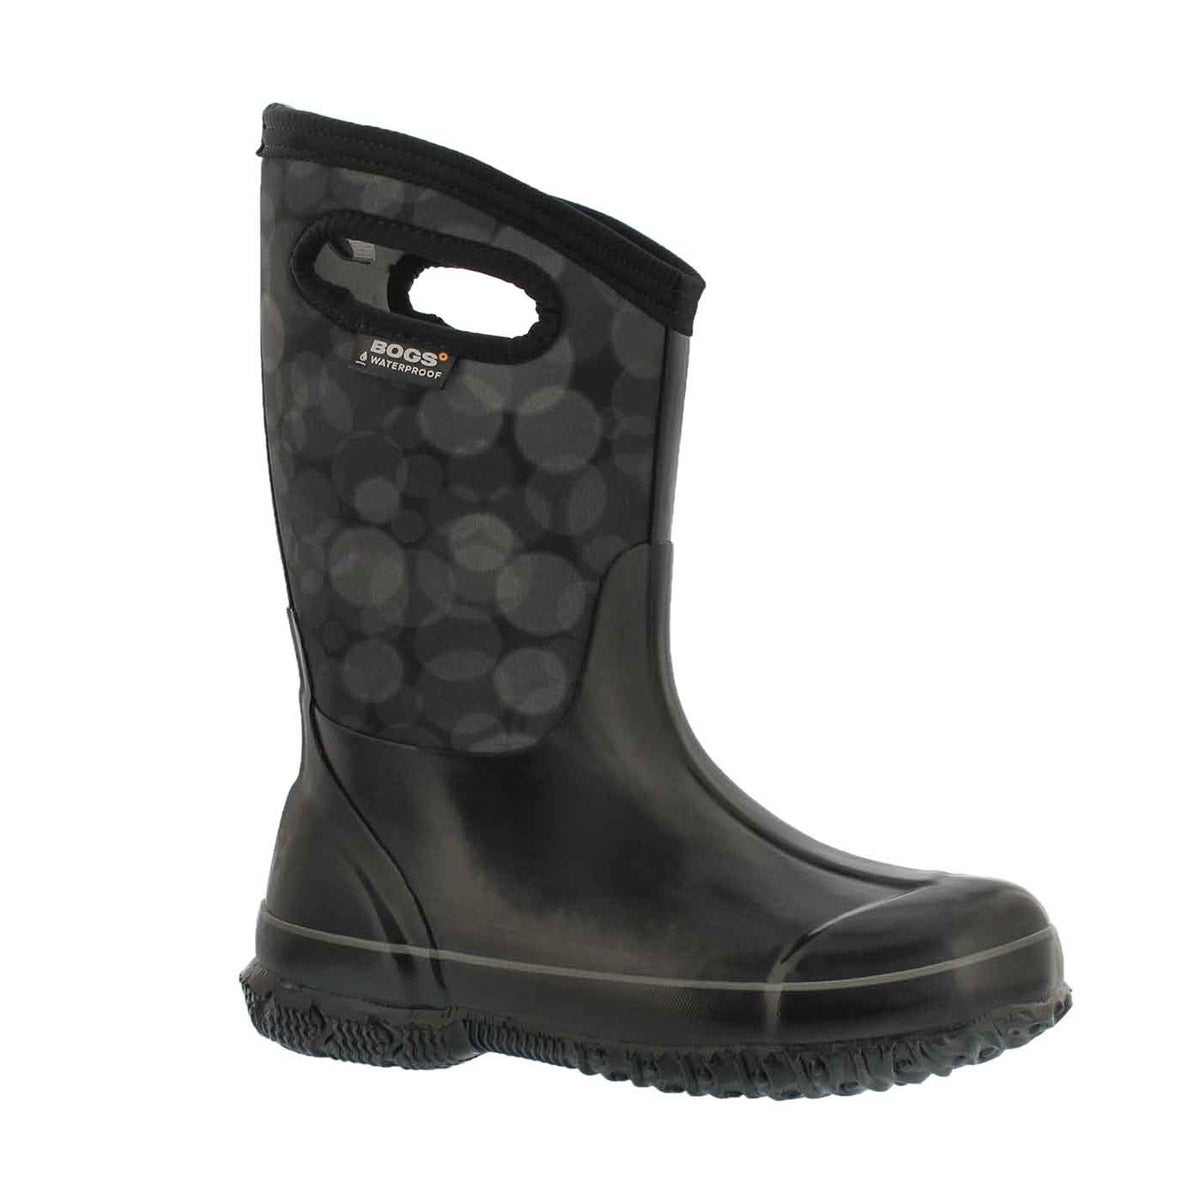 Girls' CLASSIC RN black multi waterproof boots